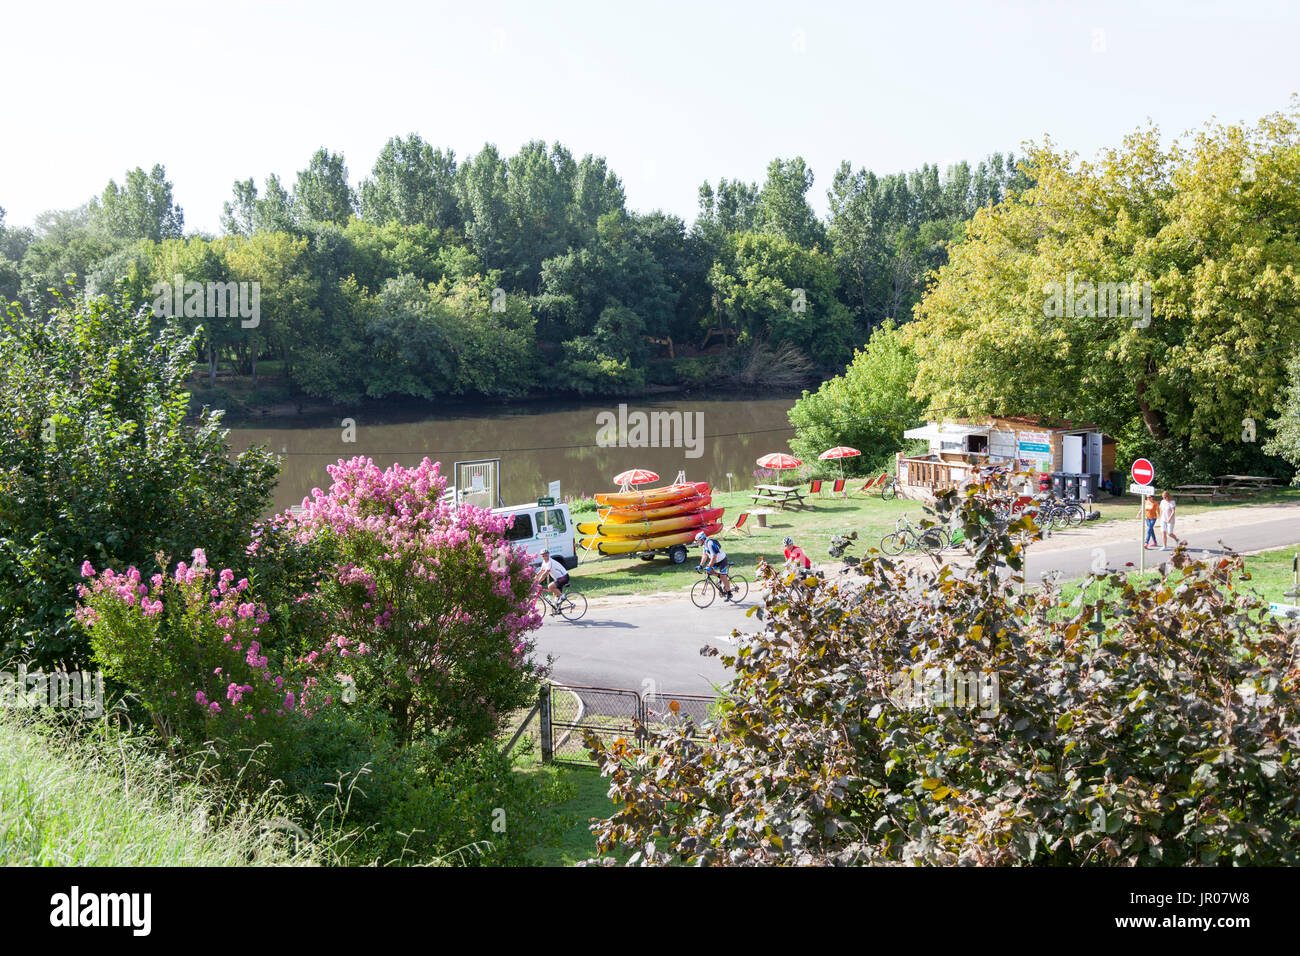 The mini nautical sports and recreation park on the river Adour, at Josse (France). It offers the opportunity to practise canoeing and boating. - Stock Image